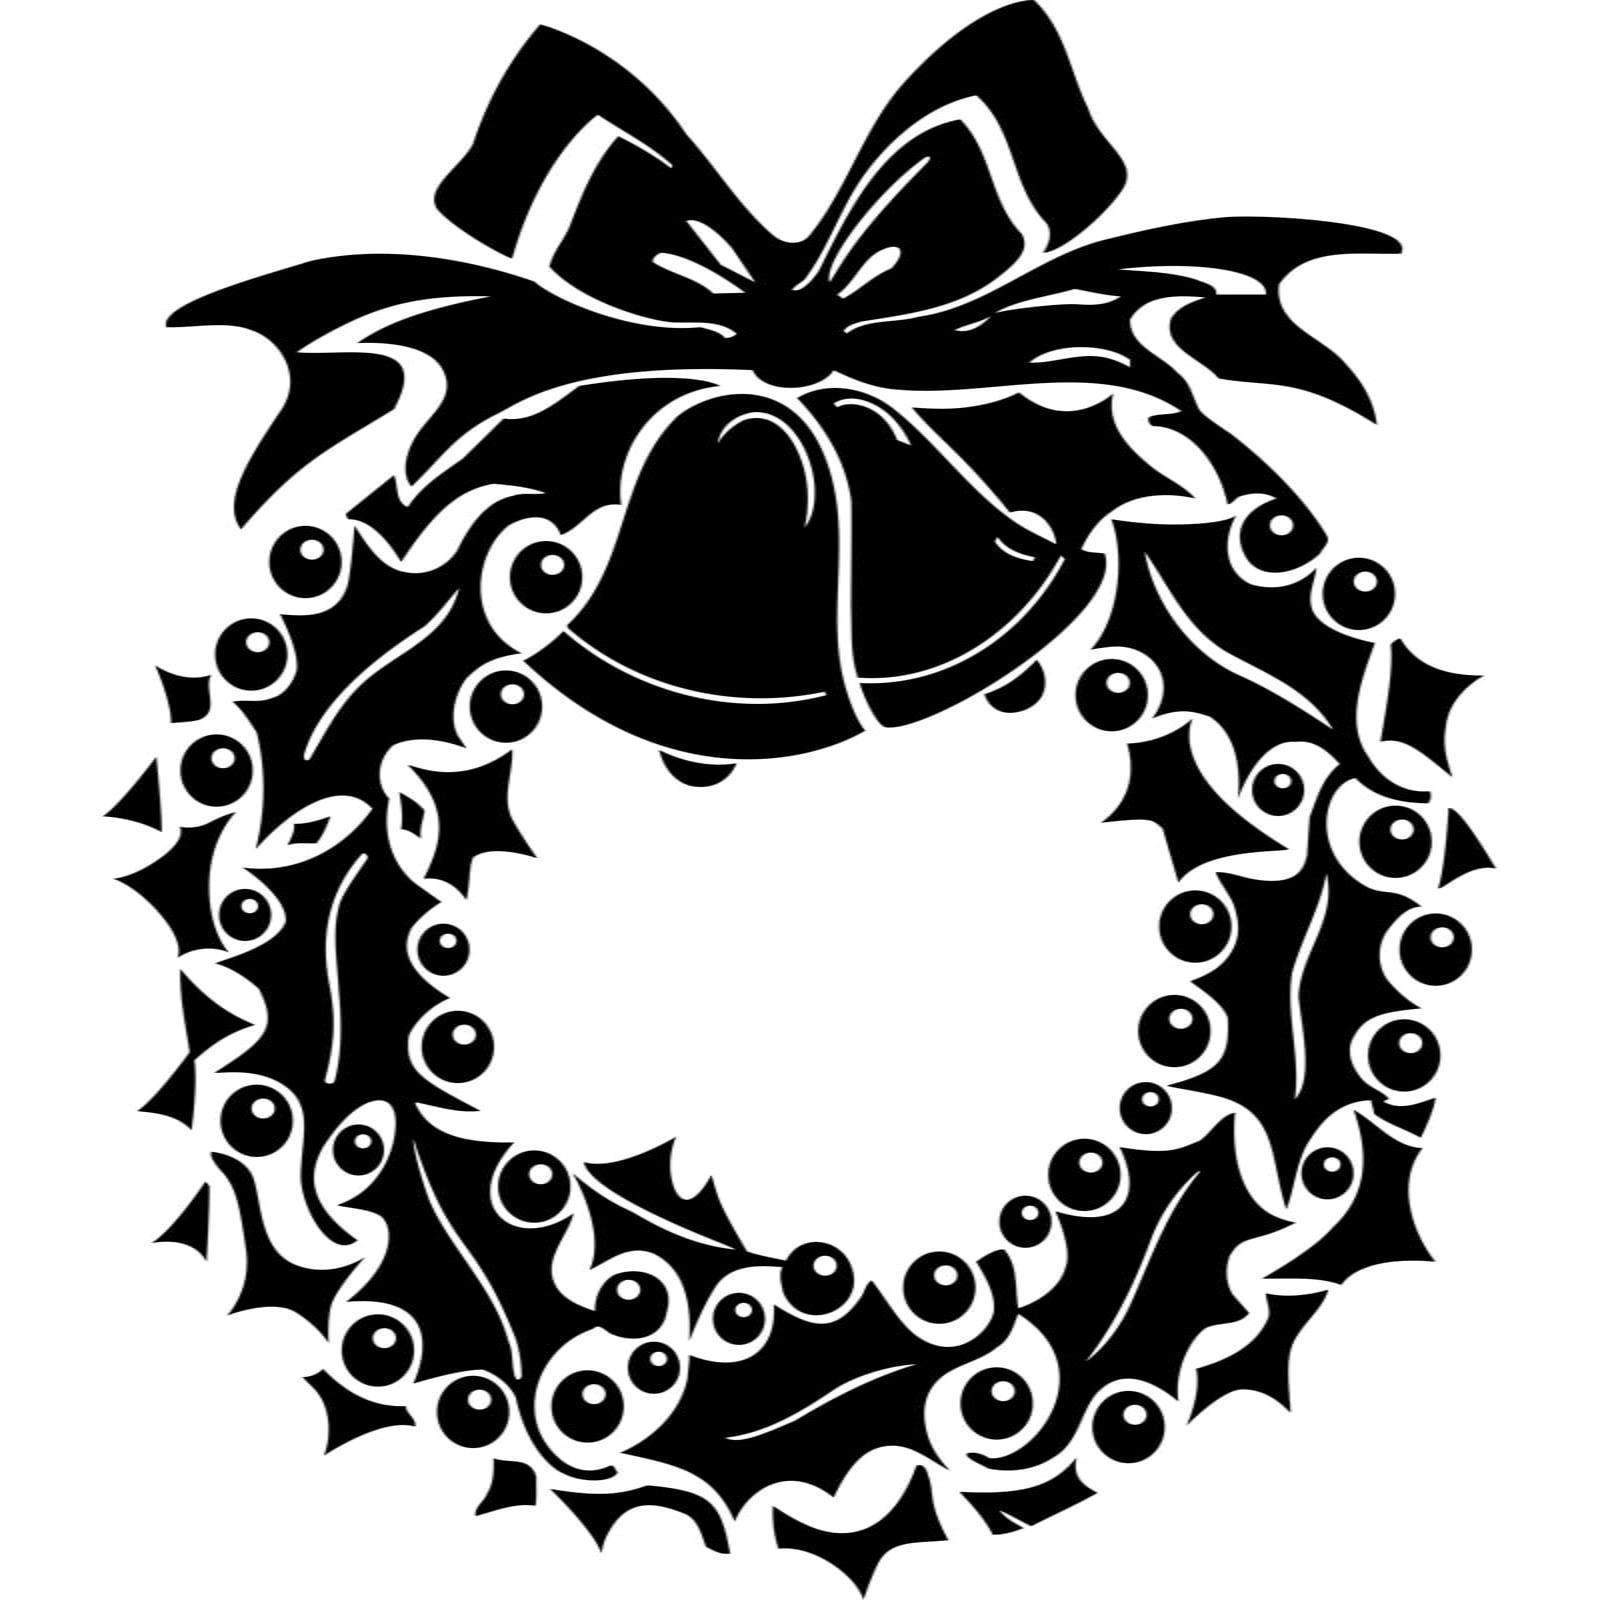 Christmas bell wreath black and white clipart jpg freeuse download Holly and Berry Wreath with Bow and Bells Christmas Wall Sticker / Decal -  World of Wall Stickers jpg freeuse download